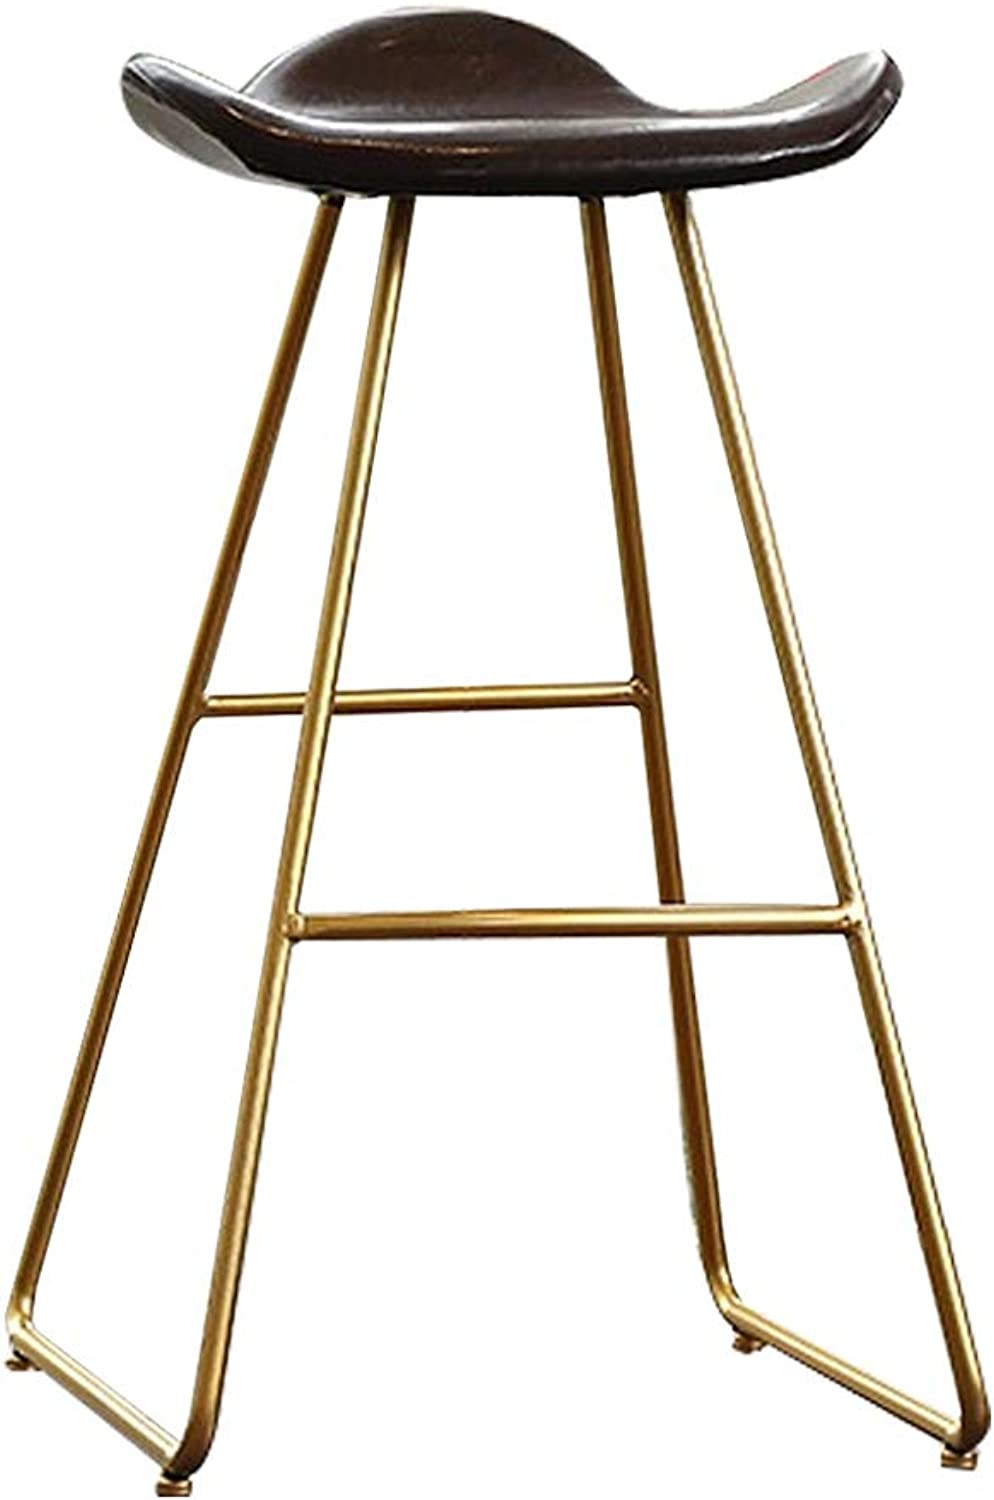 Modern Barstool High Footrest Metal Bar Stool Counter Bistro Pub Breakfast Kitchen Stool Chairs   gold Metal Legs Faux Leather Seat, Brown